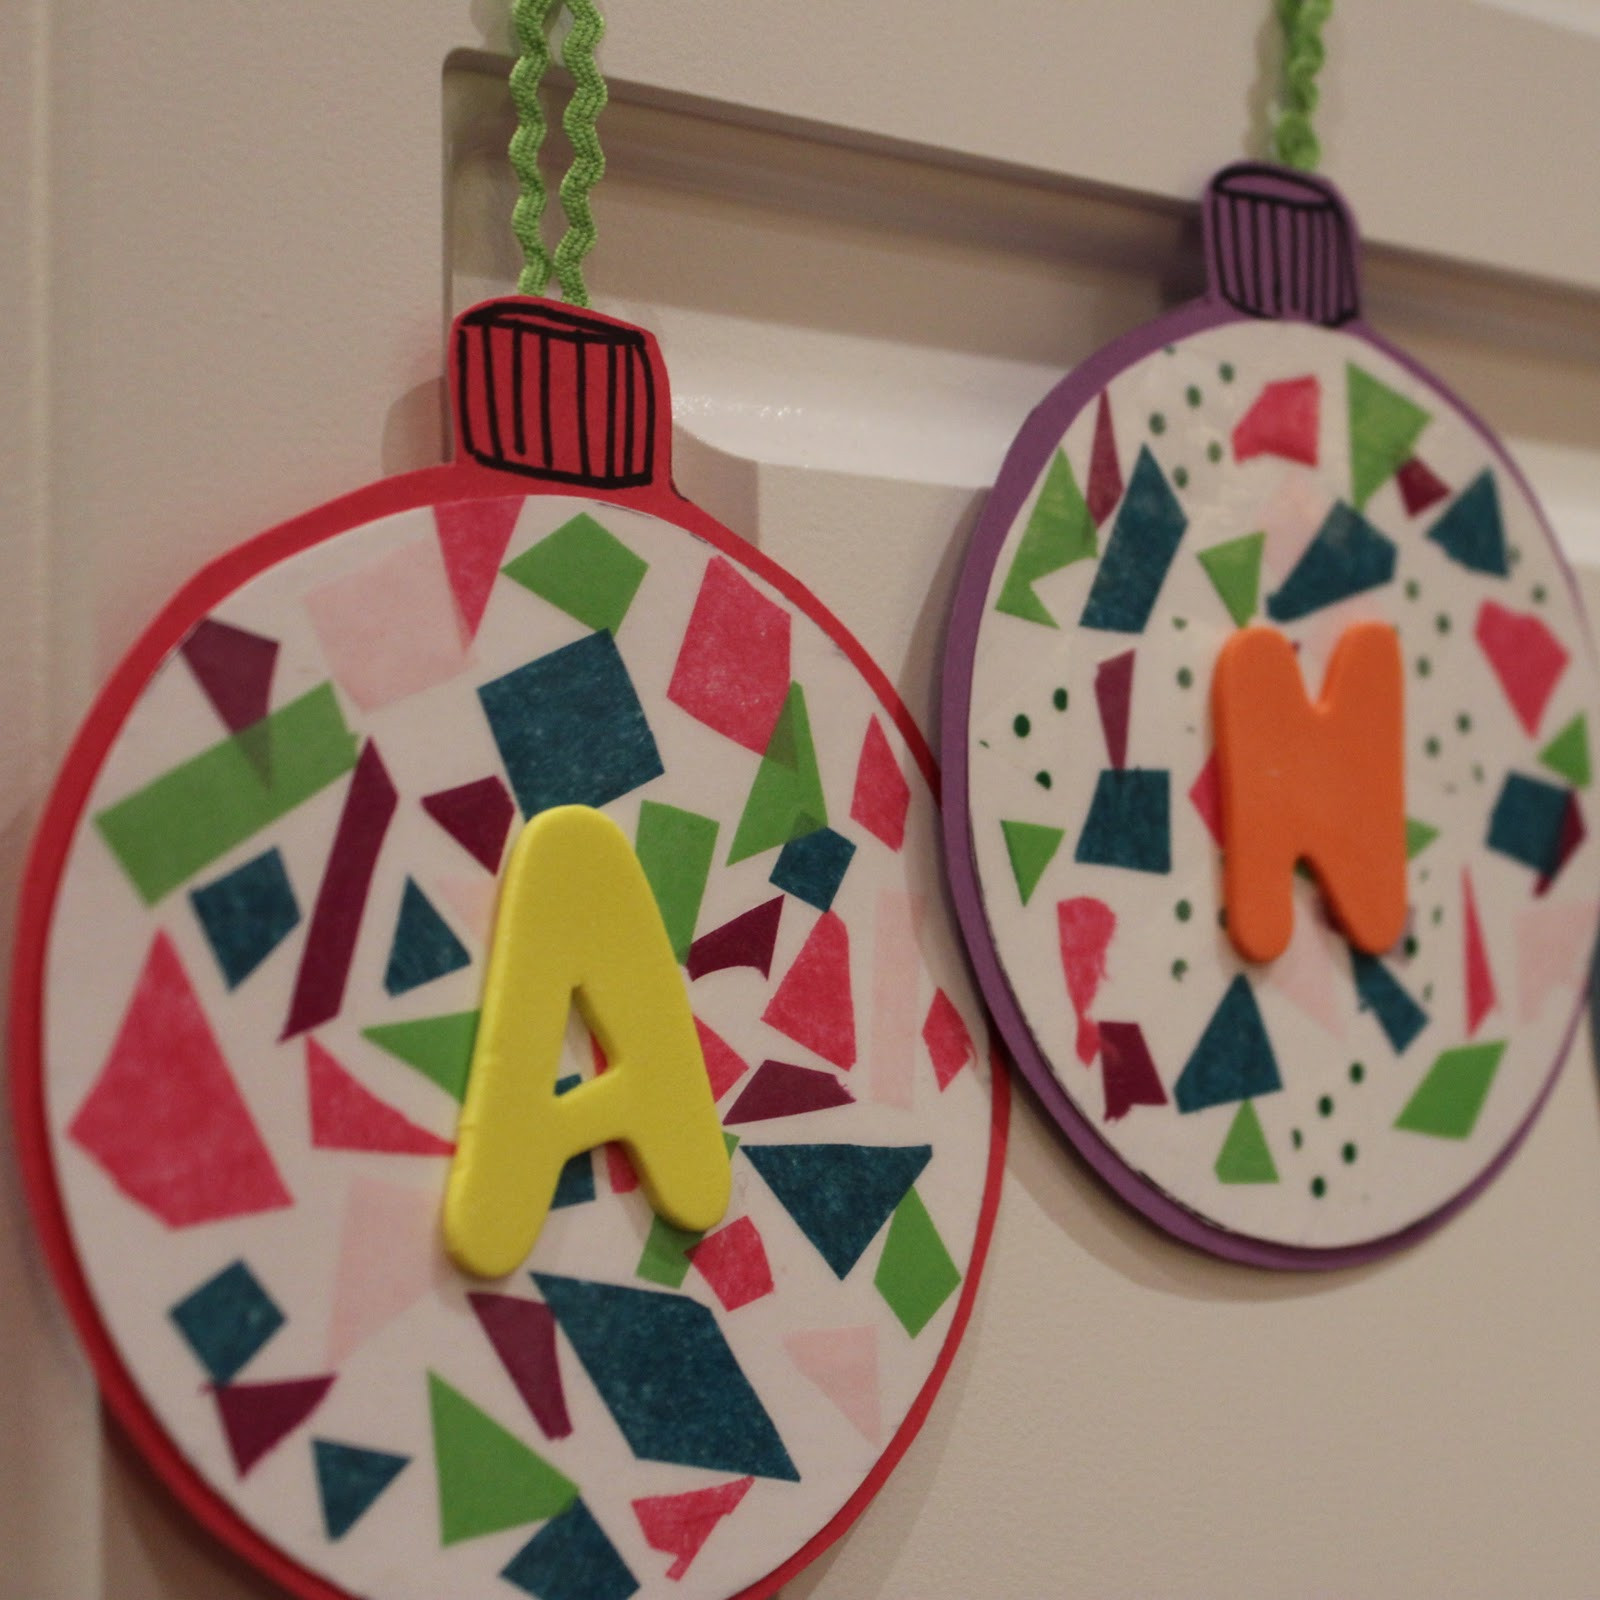 Christmas Craft Ideas For Preschoolers  Toddler Approved Snippin Name Ornaments with BOB Books